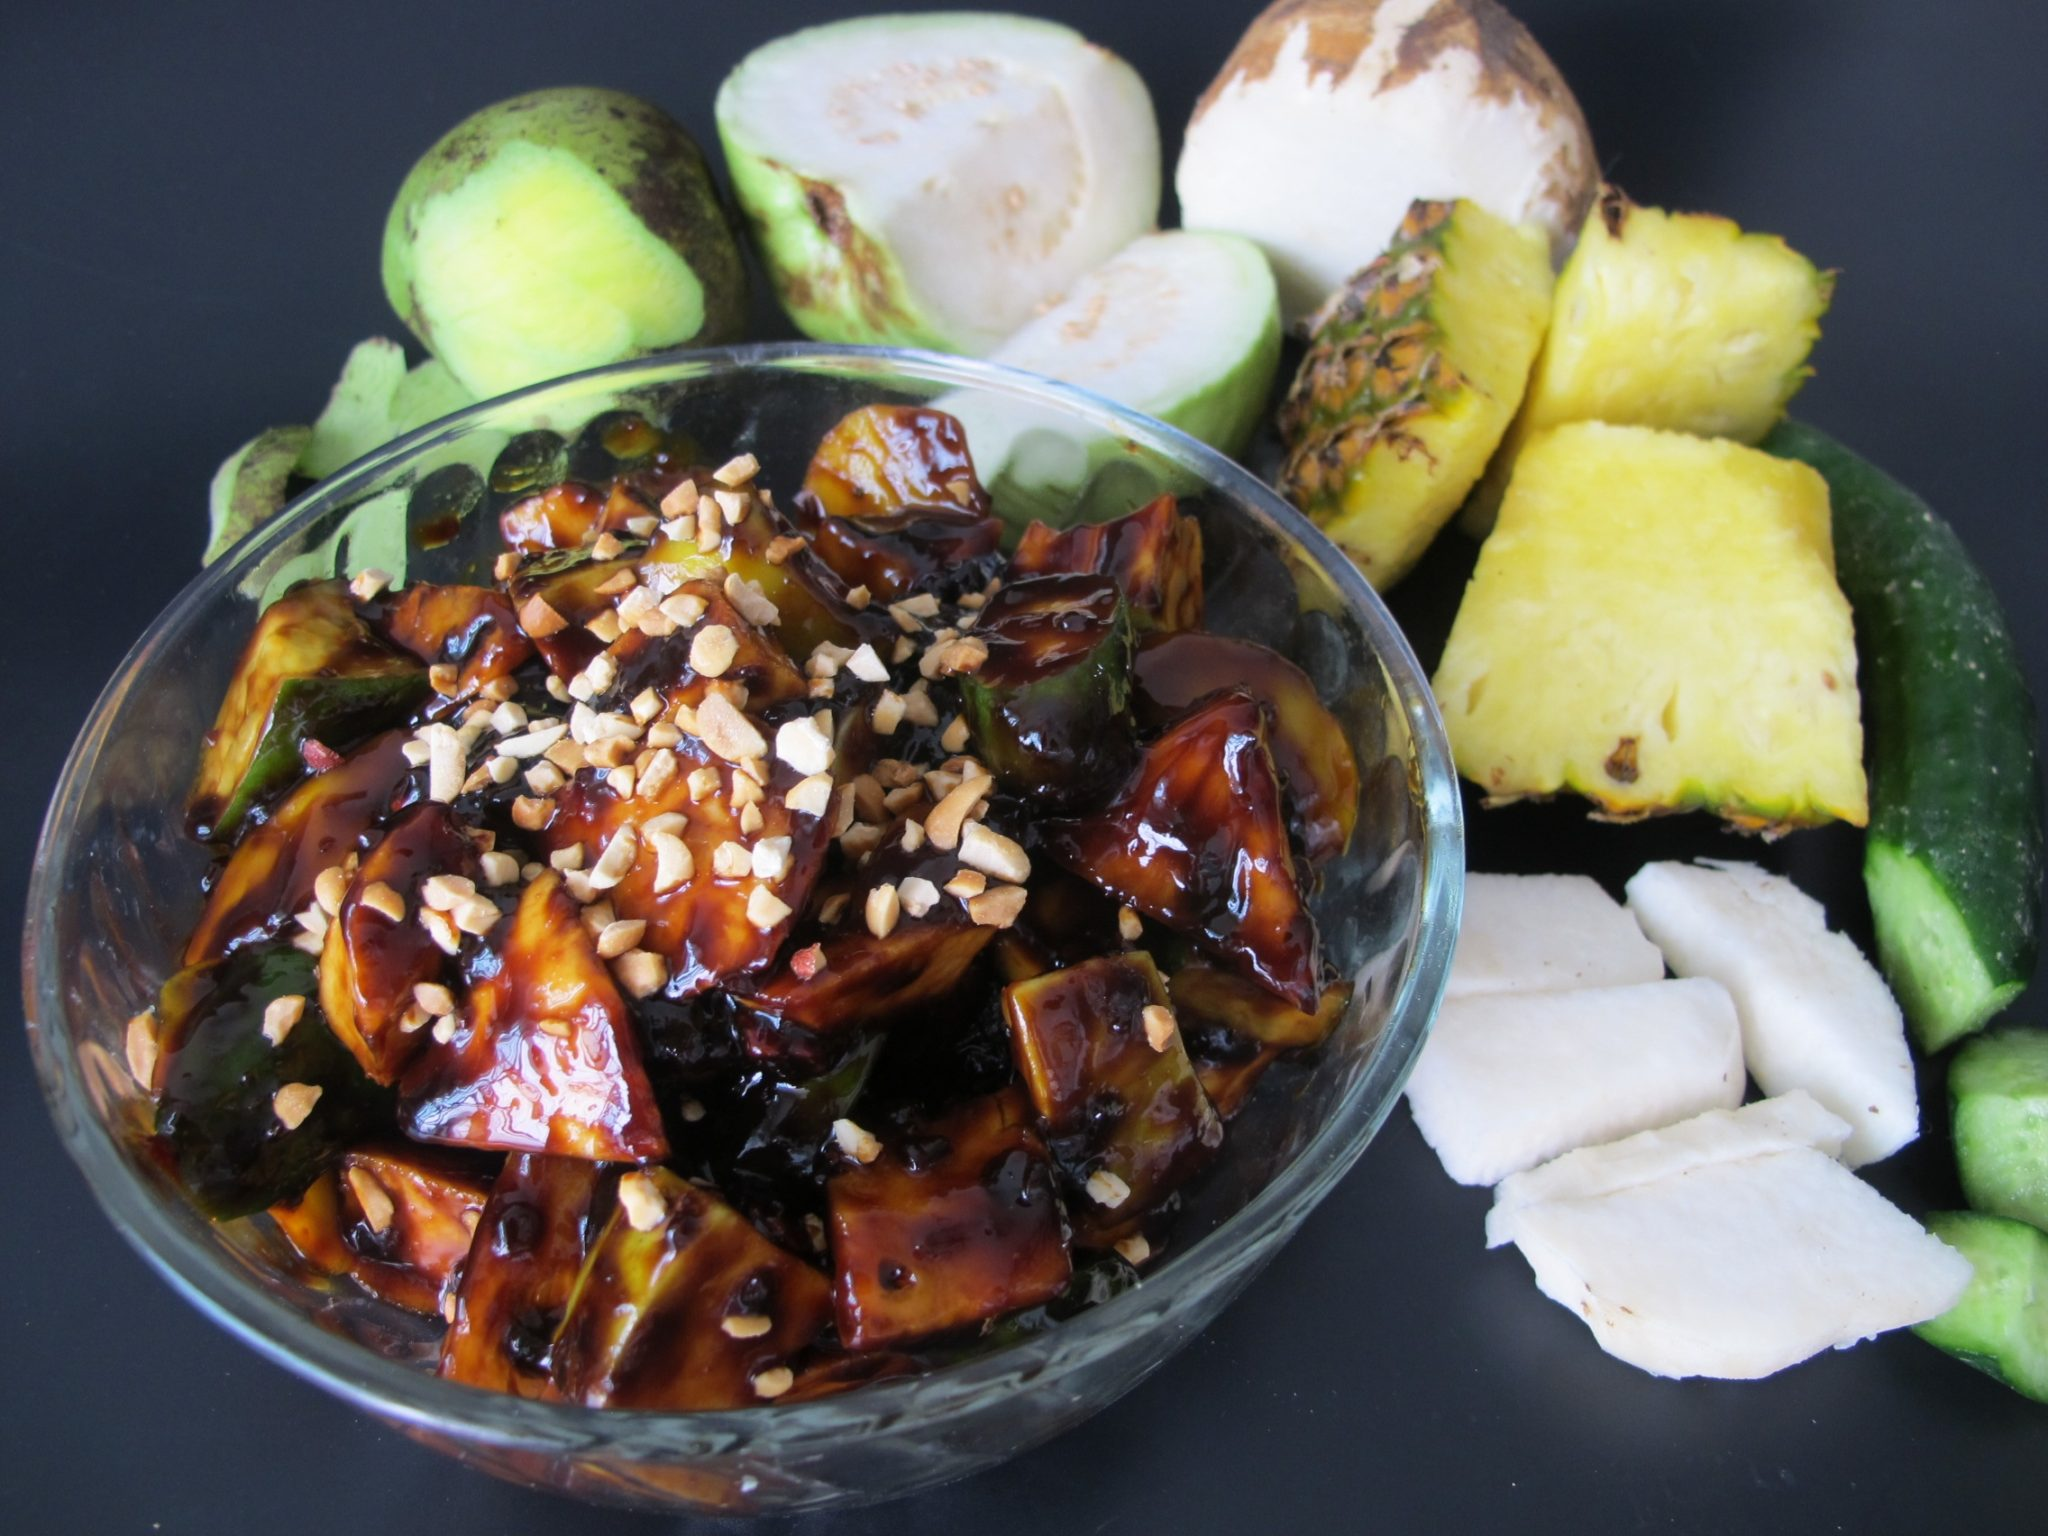 Nyonya Rojak (Savoury Fruit and Vegetable Salad)